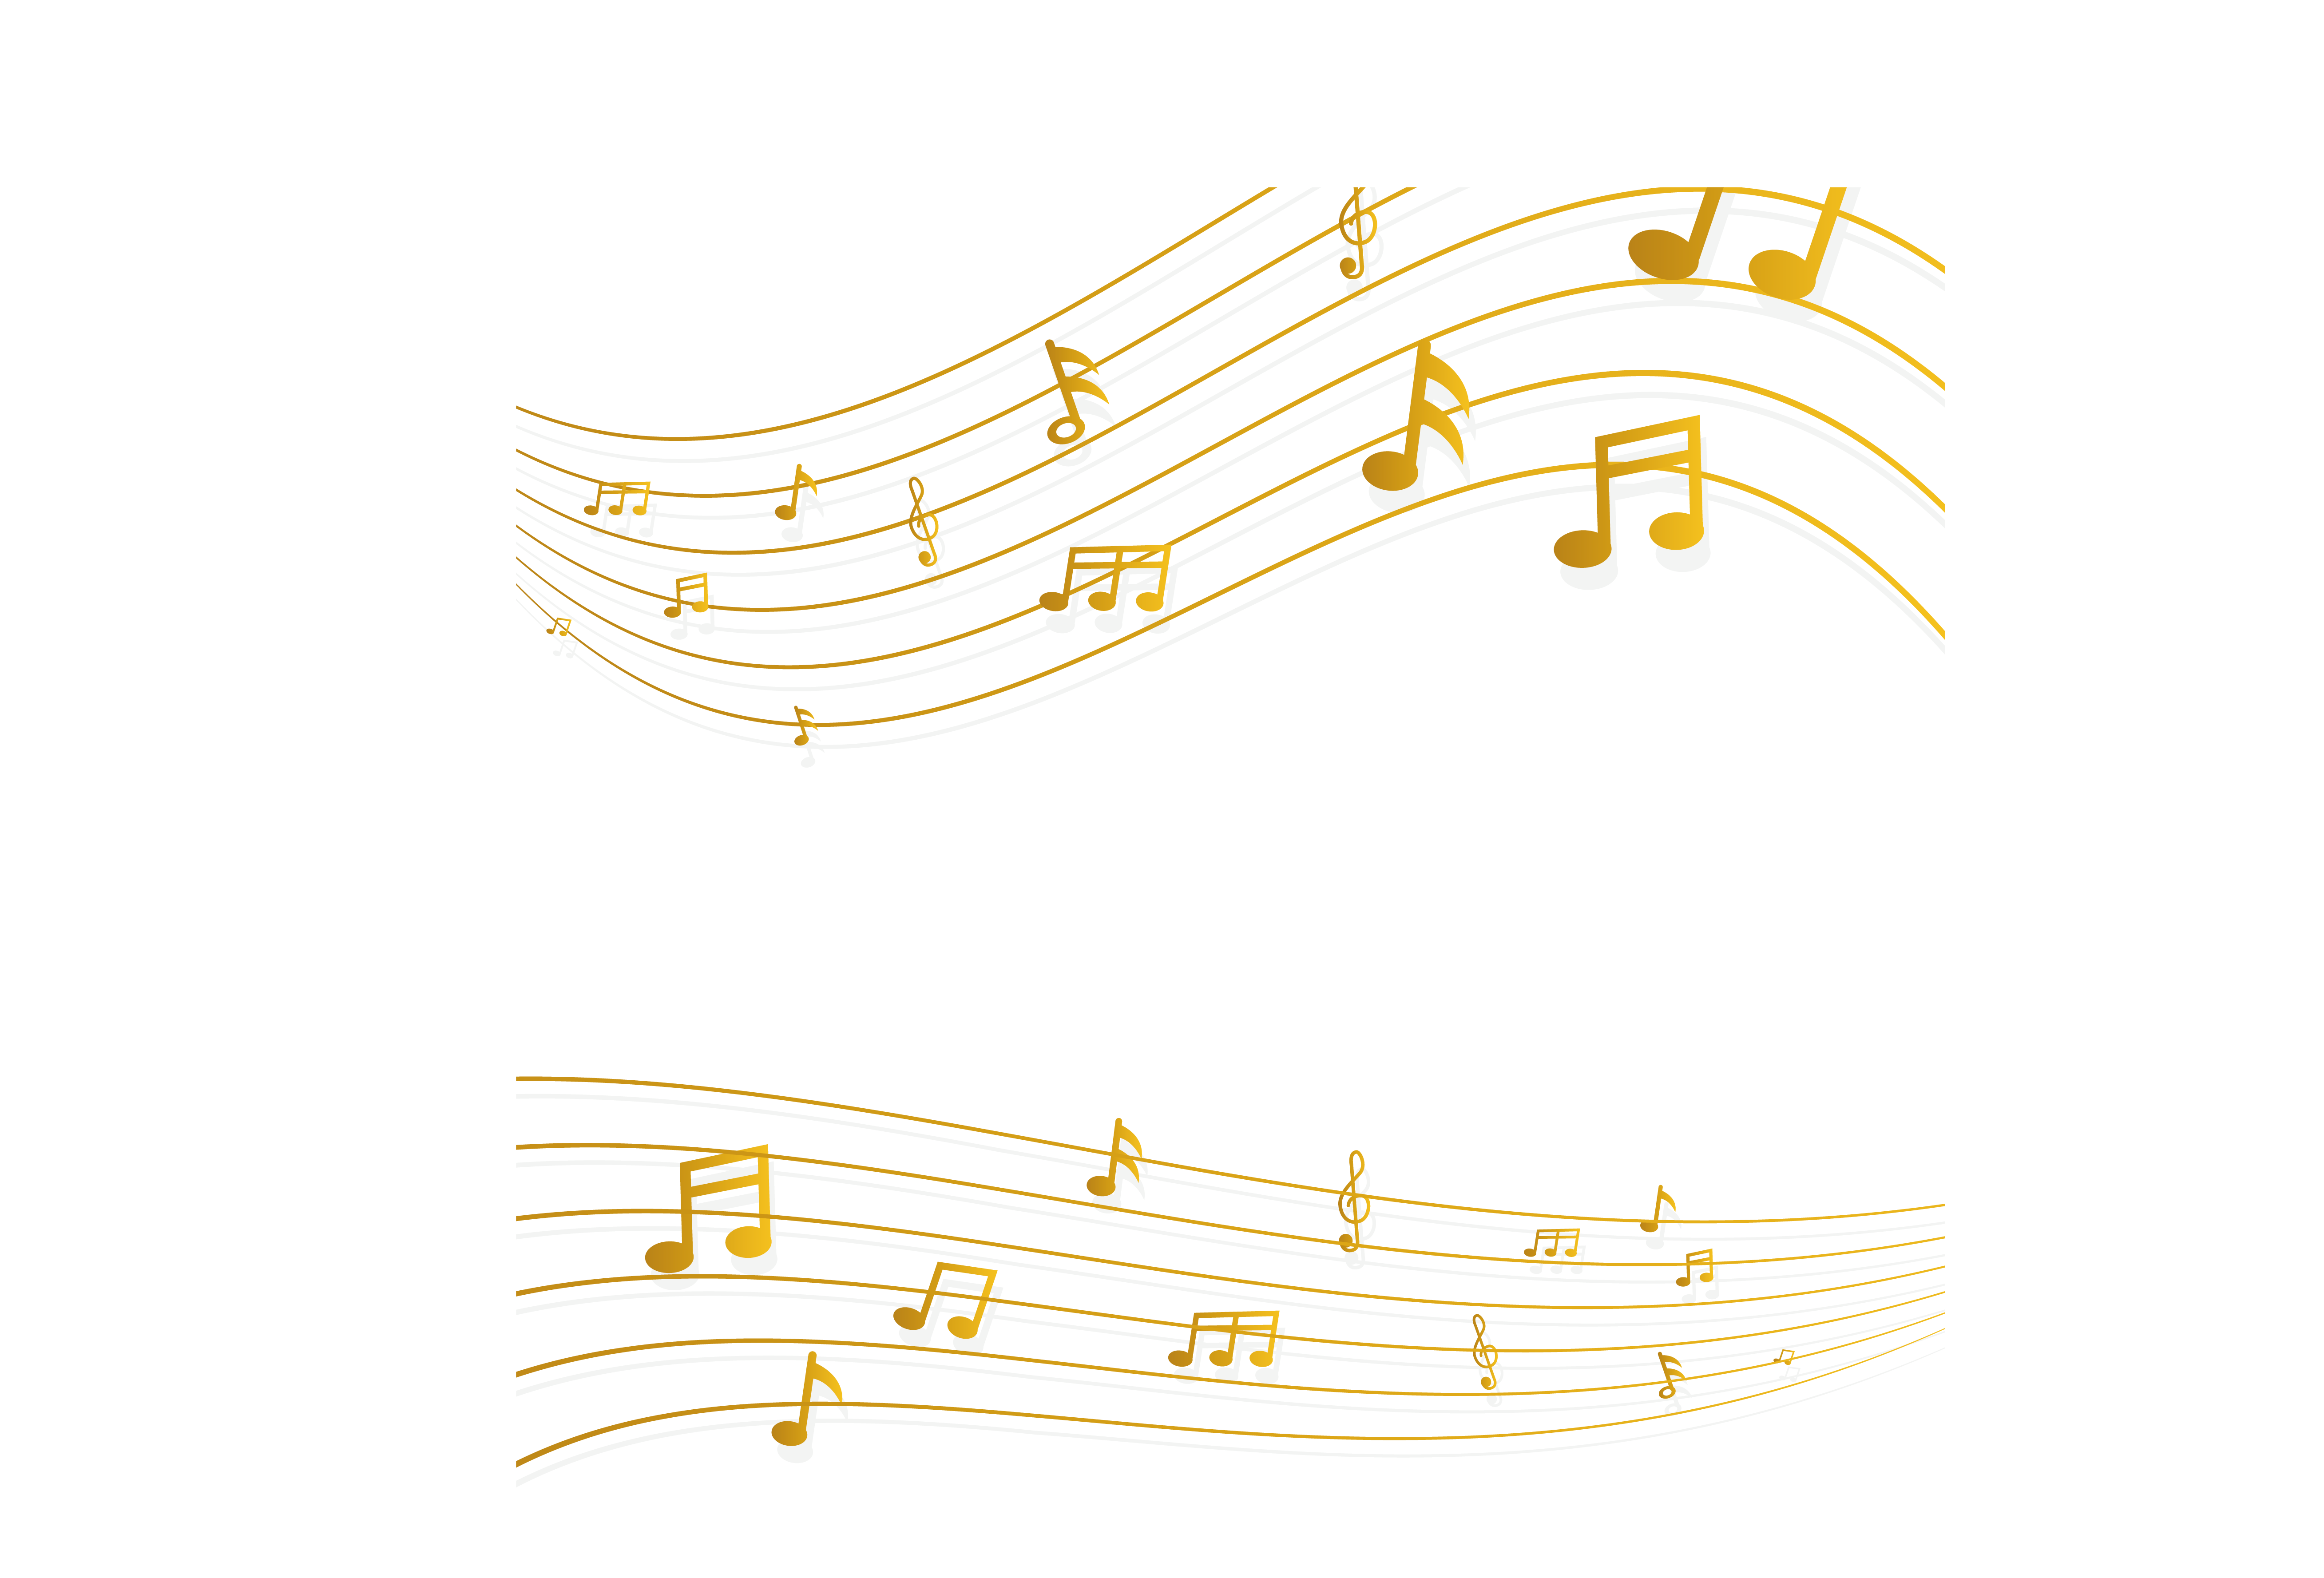 Golden music note png. Structure yellow pattern melodious